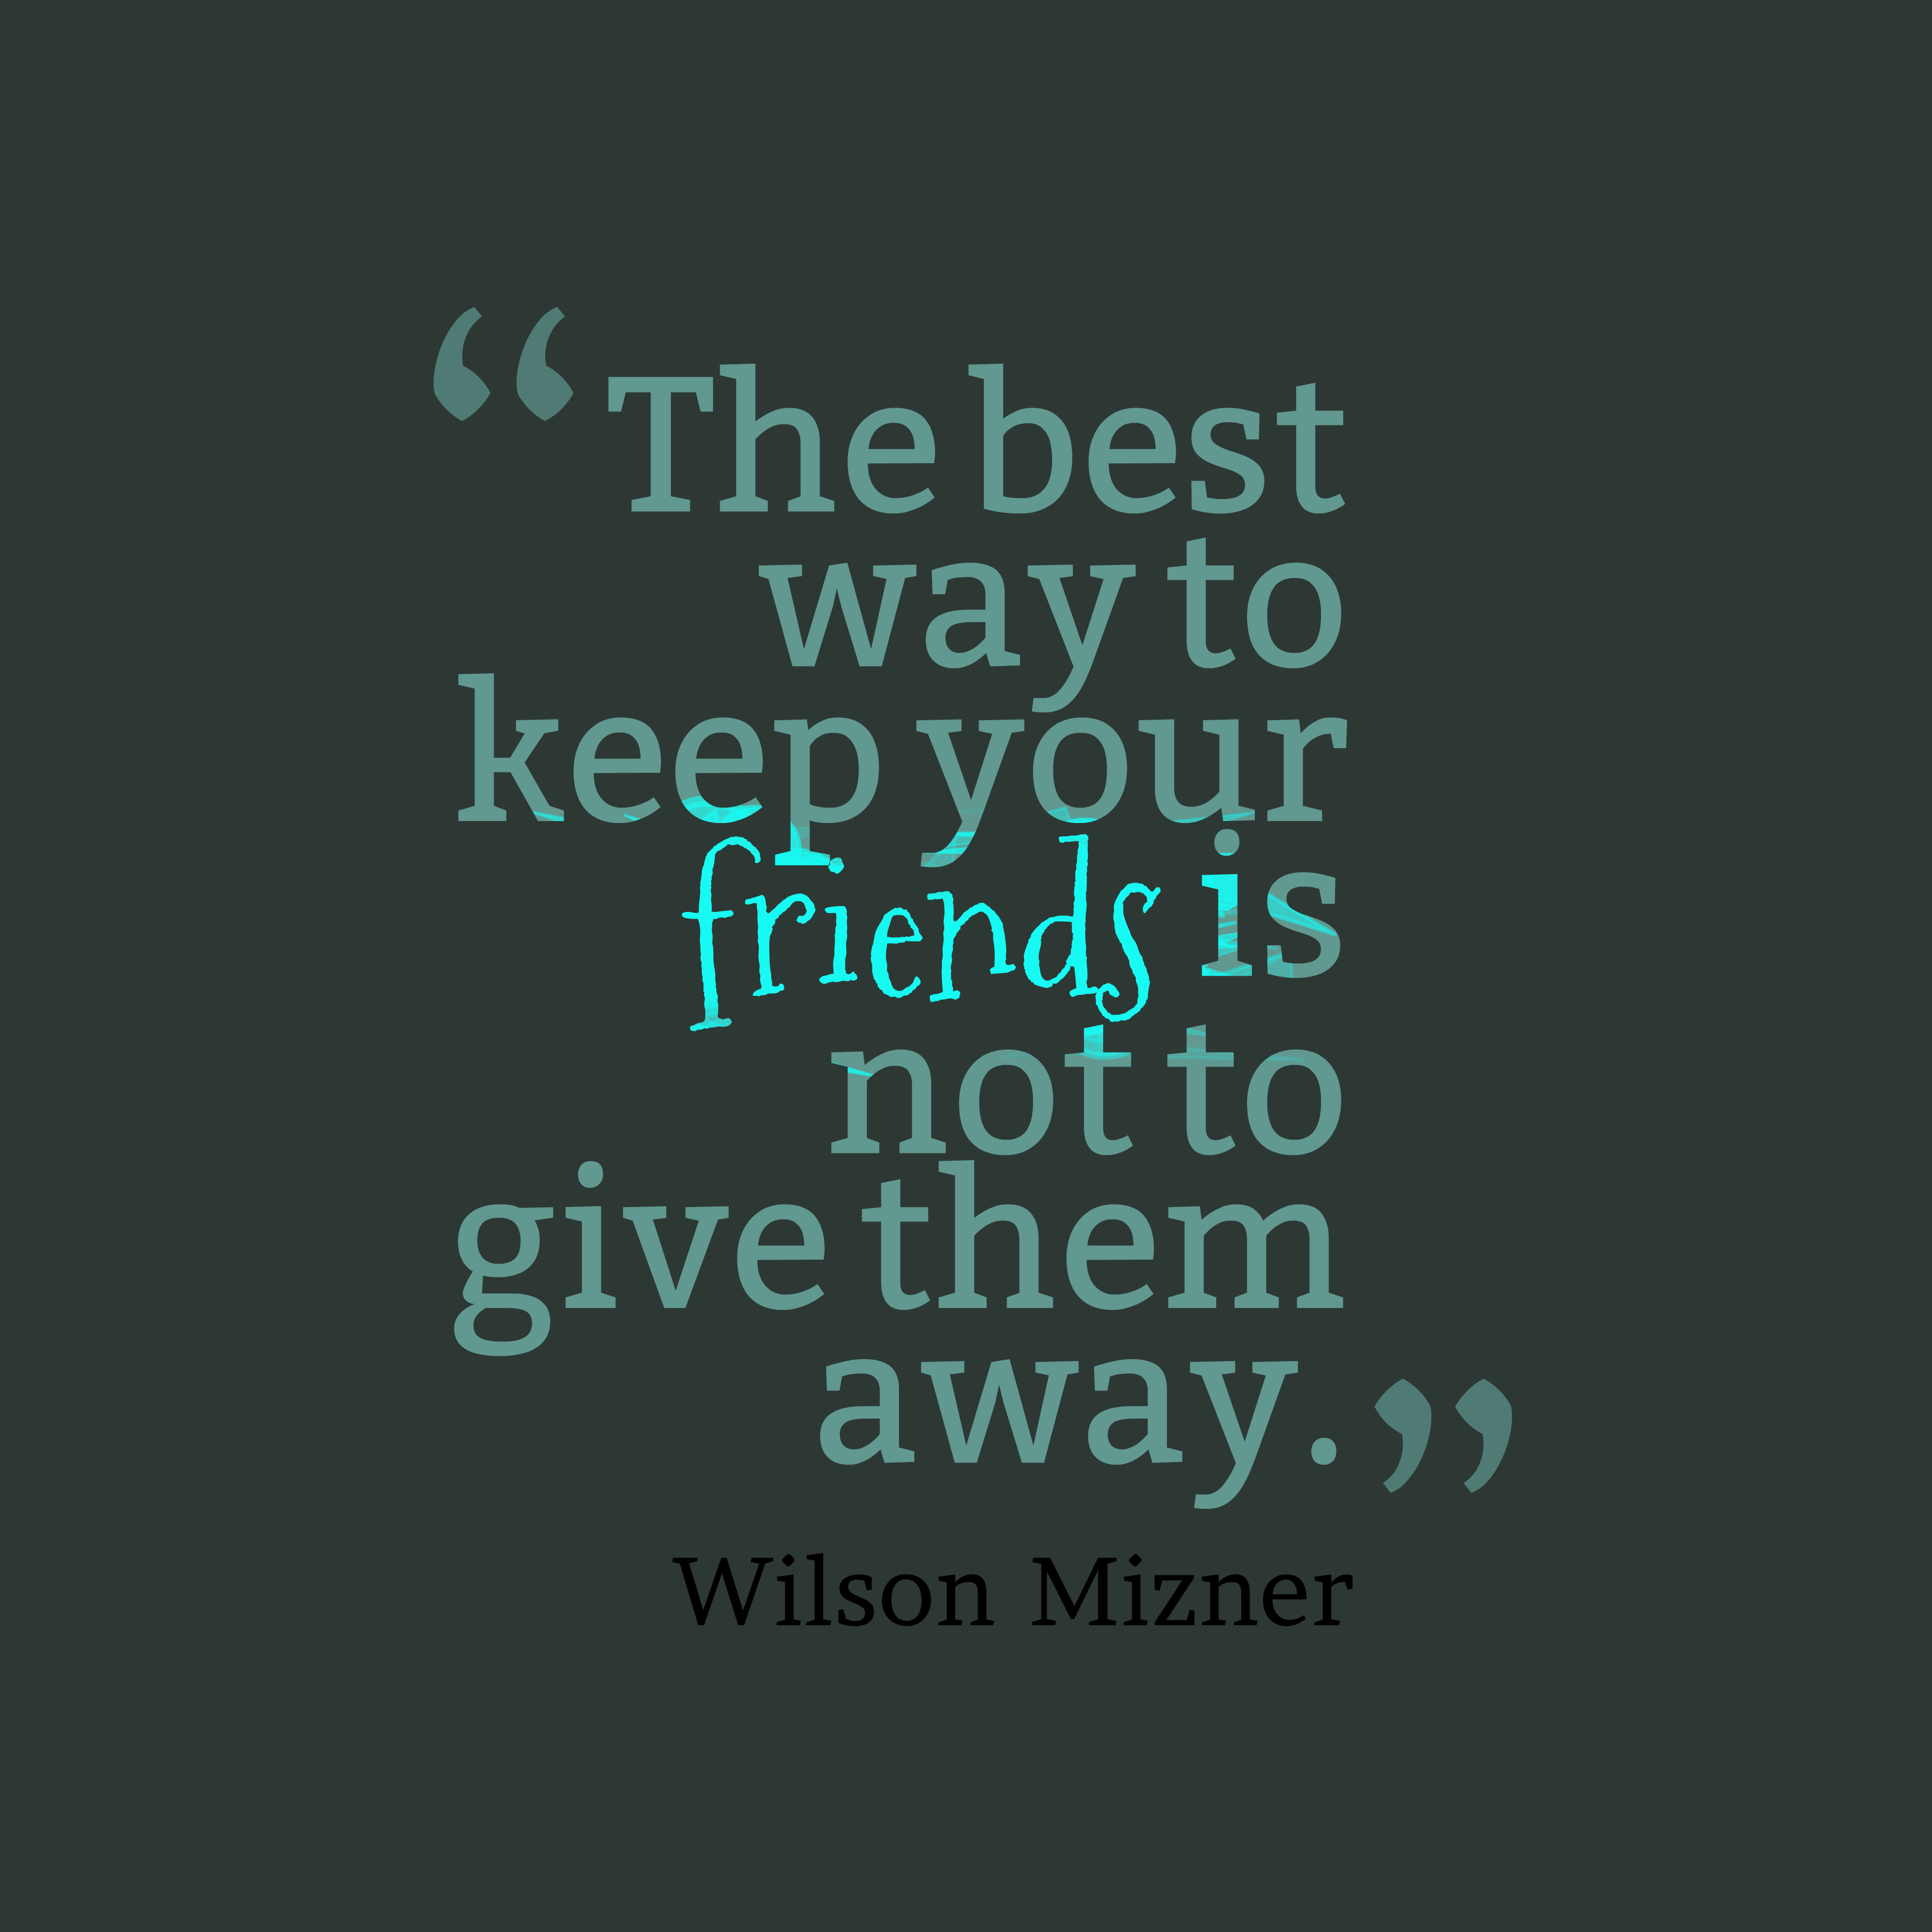 Download High Resolution Quotes Picture Maker From Wilson